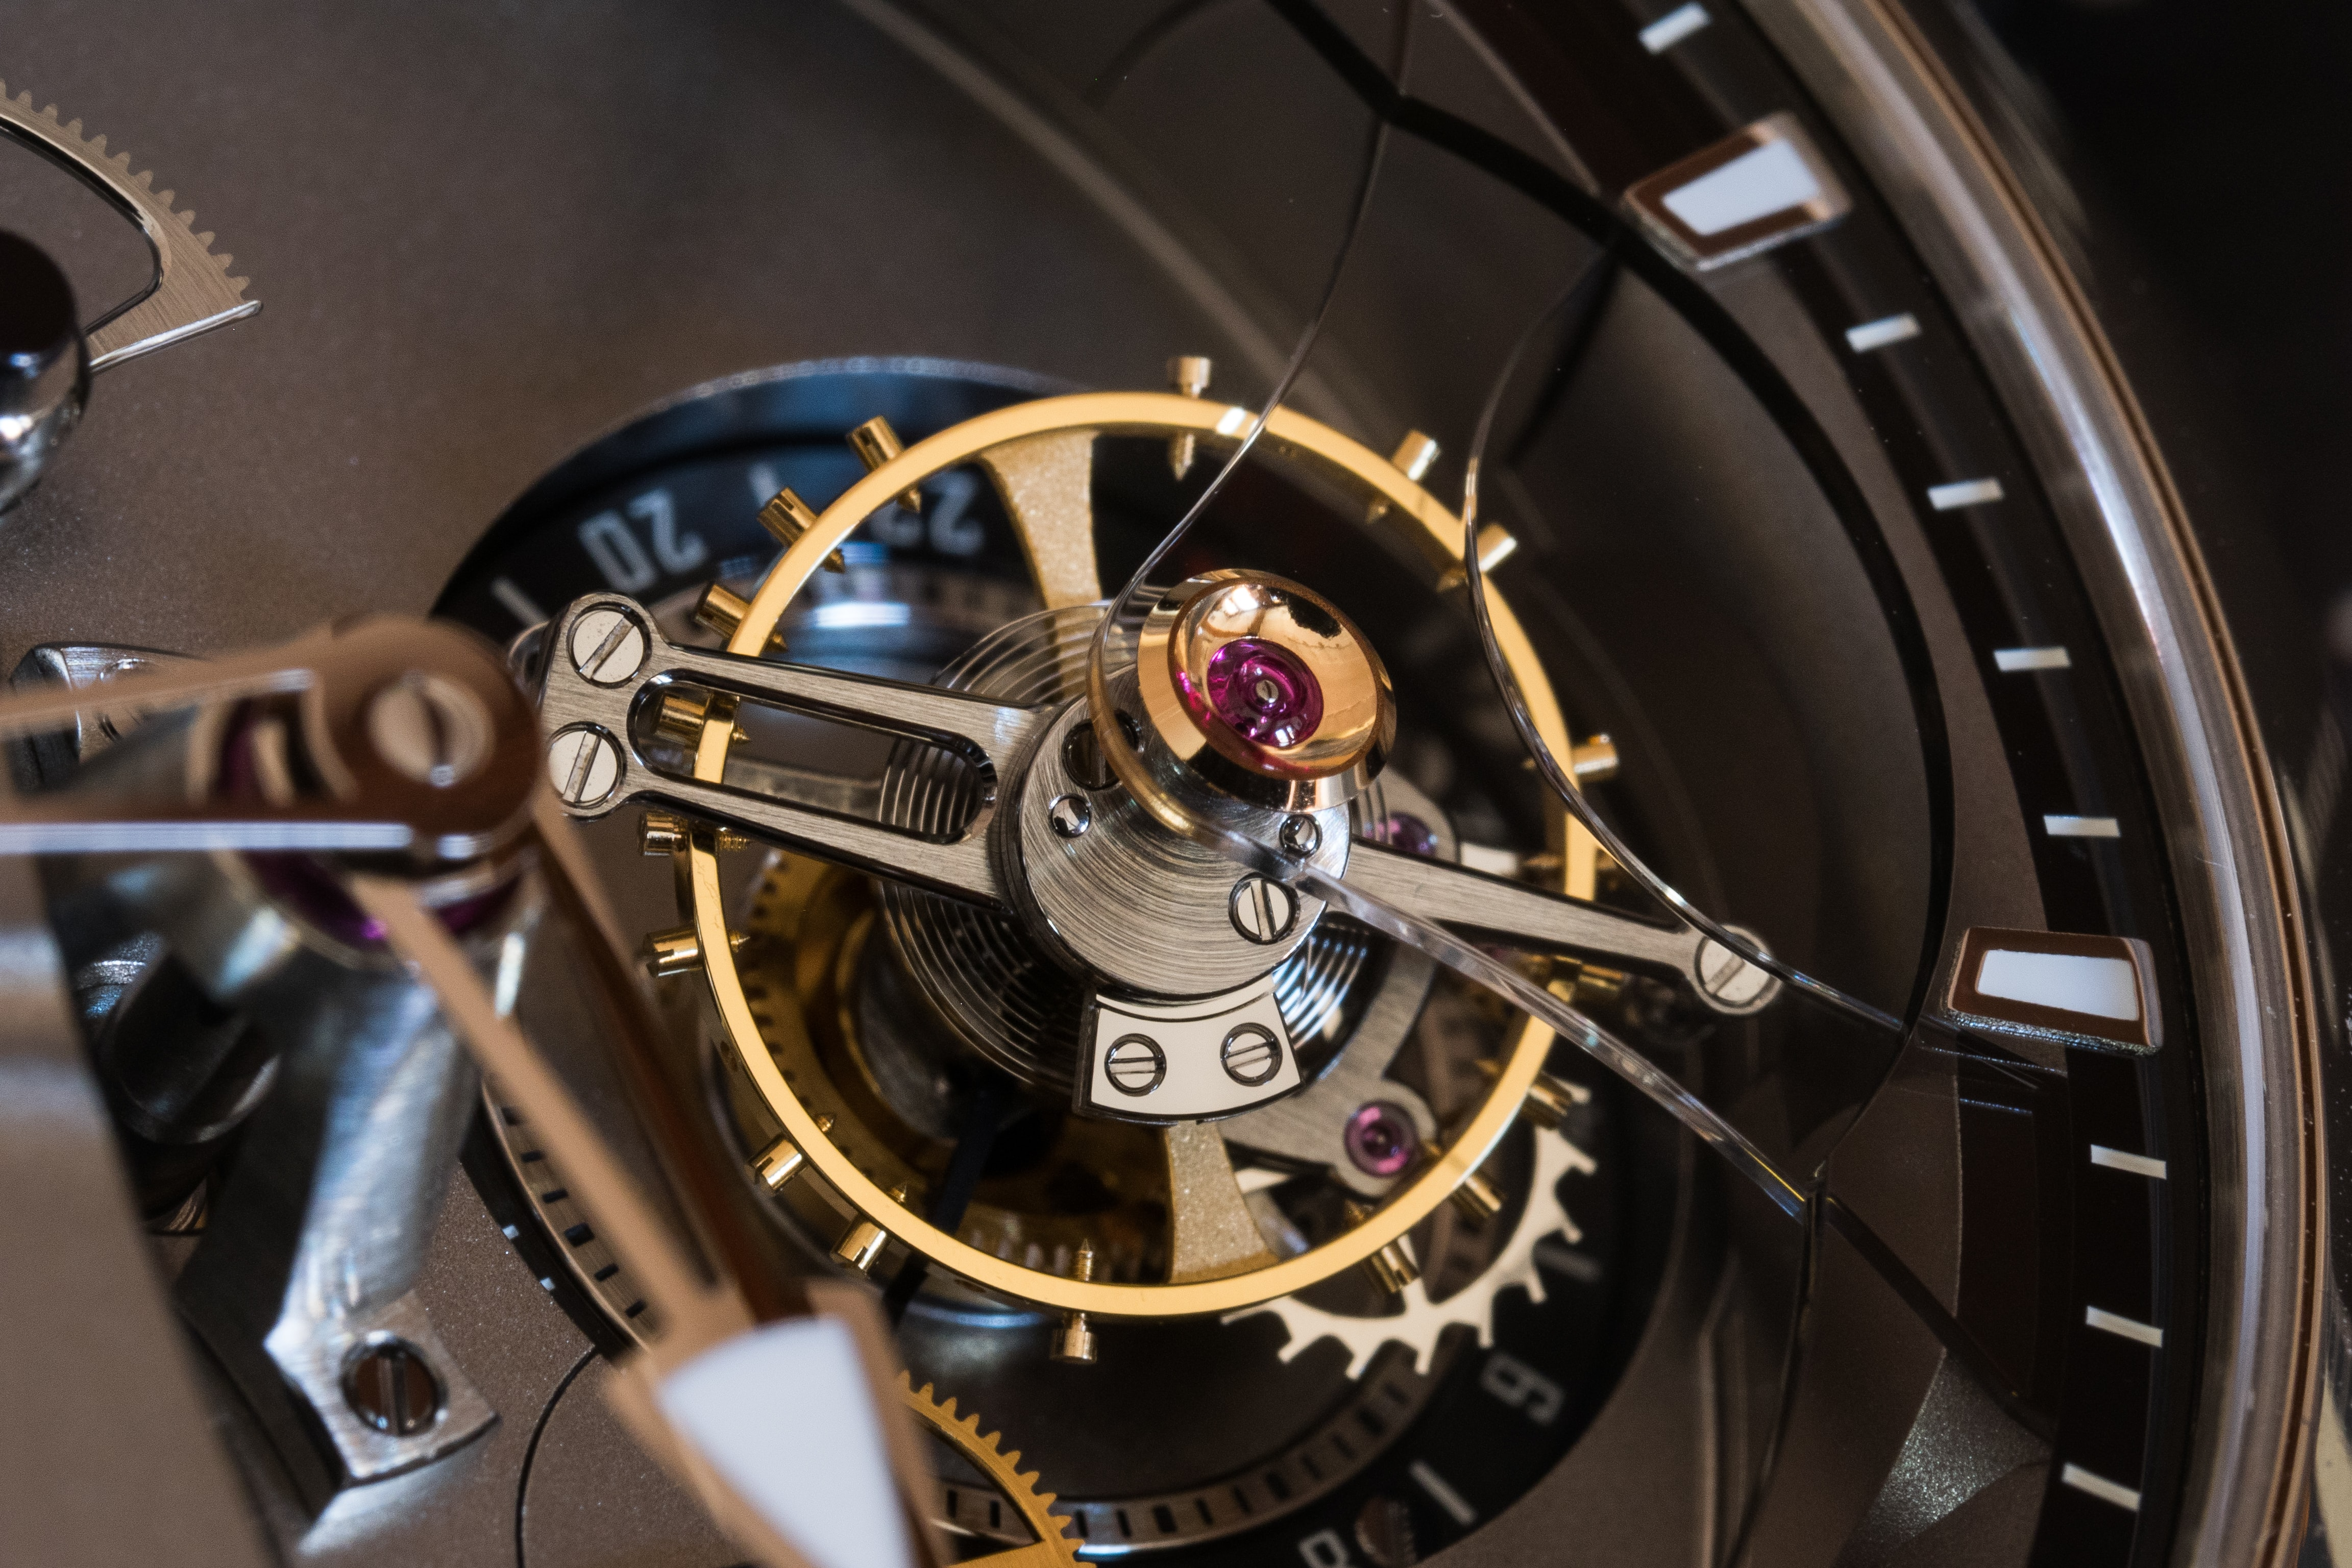 Greubel Forsey 24 Secondes Contemporain tourbillon balance and stud In-Depth: The Greubel Forsey 24 Secondes Contemporain In White Gold (And The Case For A Tourbillon In A Wristwatch) In-Depth: The Greubel Forsey 24 Secondes Contemporain In White Gold (And The Case For A Tourbillon In A Wristwatch) PC191053